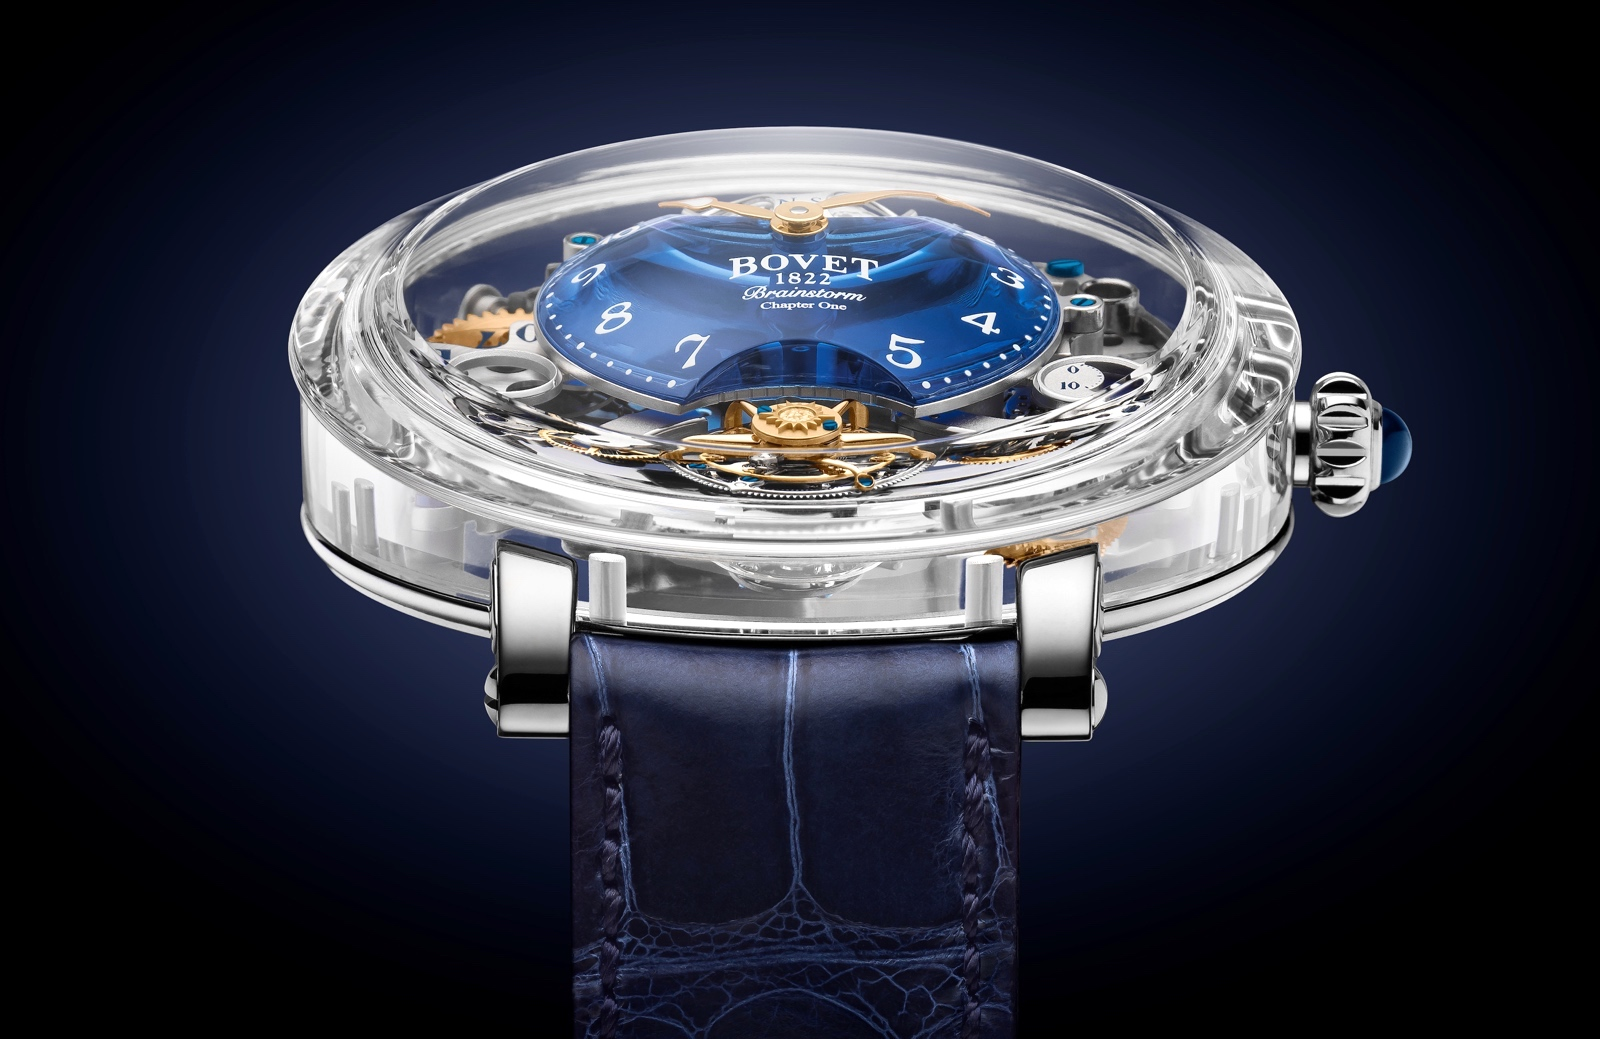 Bovet Récital 26 Brainstorm Chapter One Front